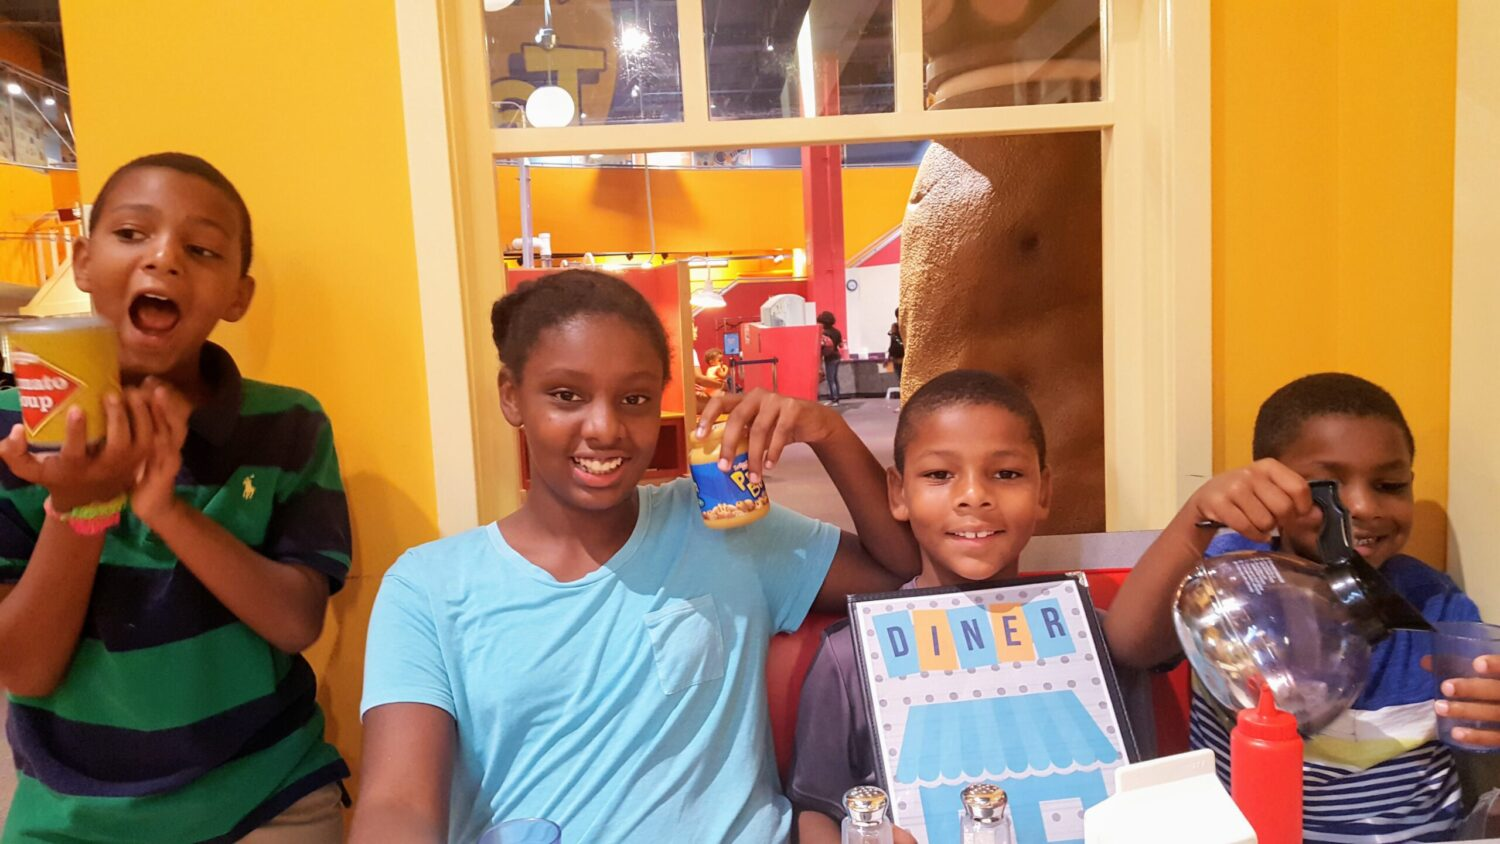 Children's Museum of Atlanta is one of the best things to do in Atlanta with kids who are younger than 9.